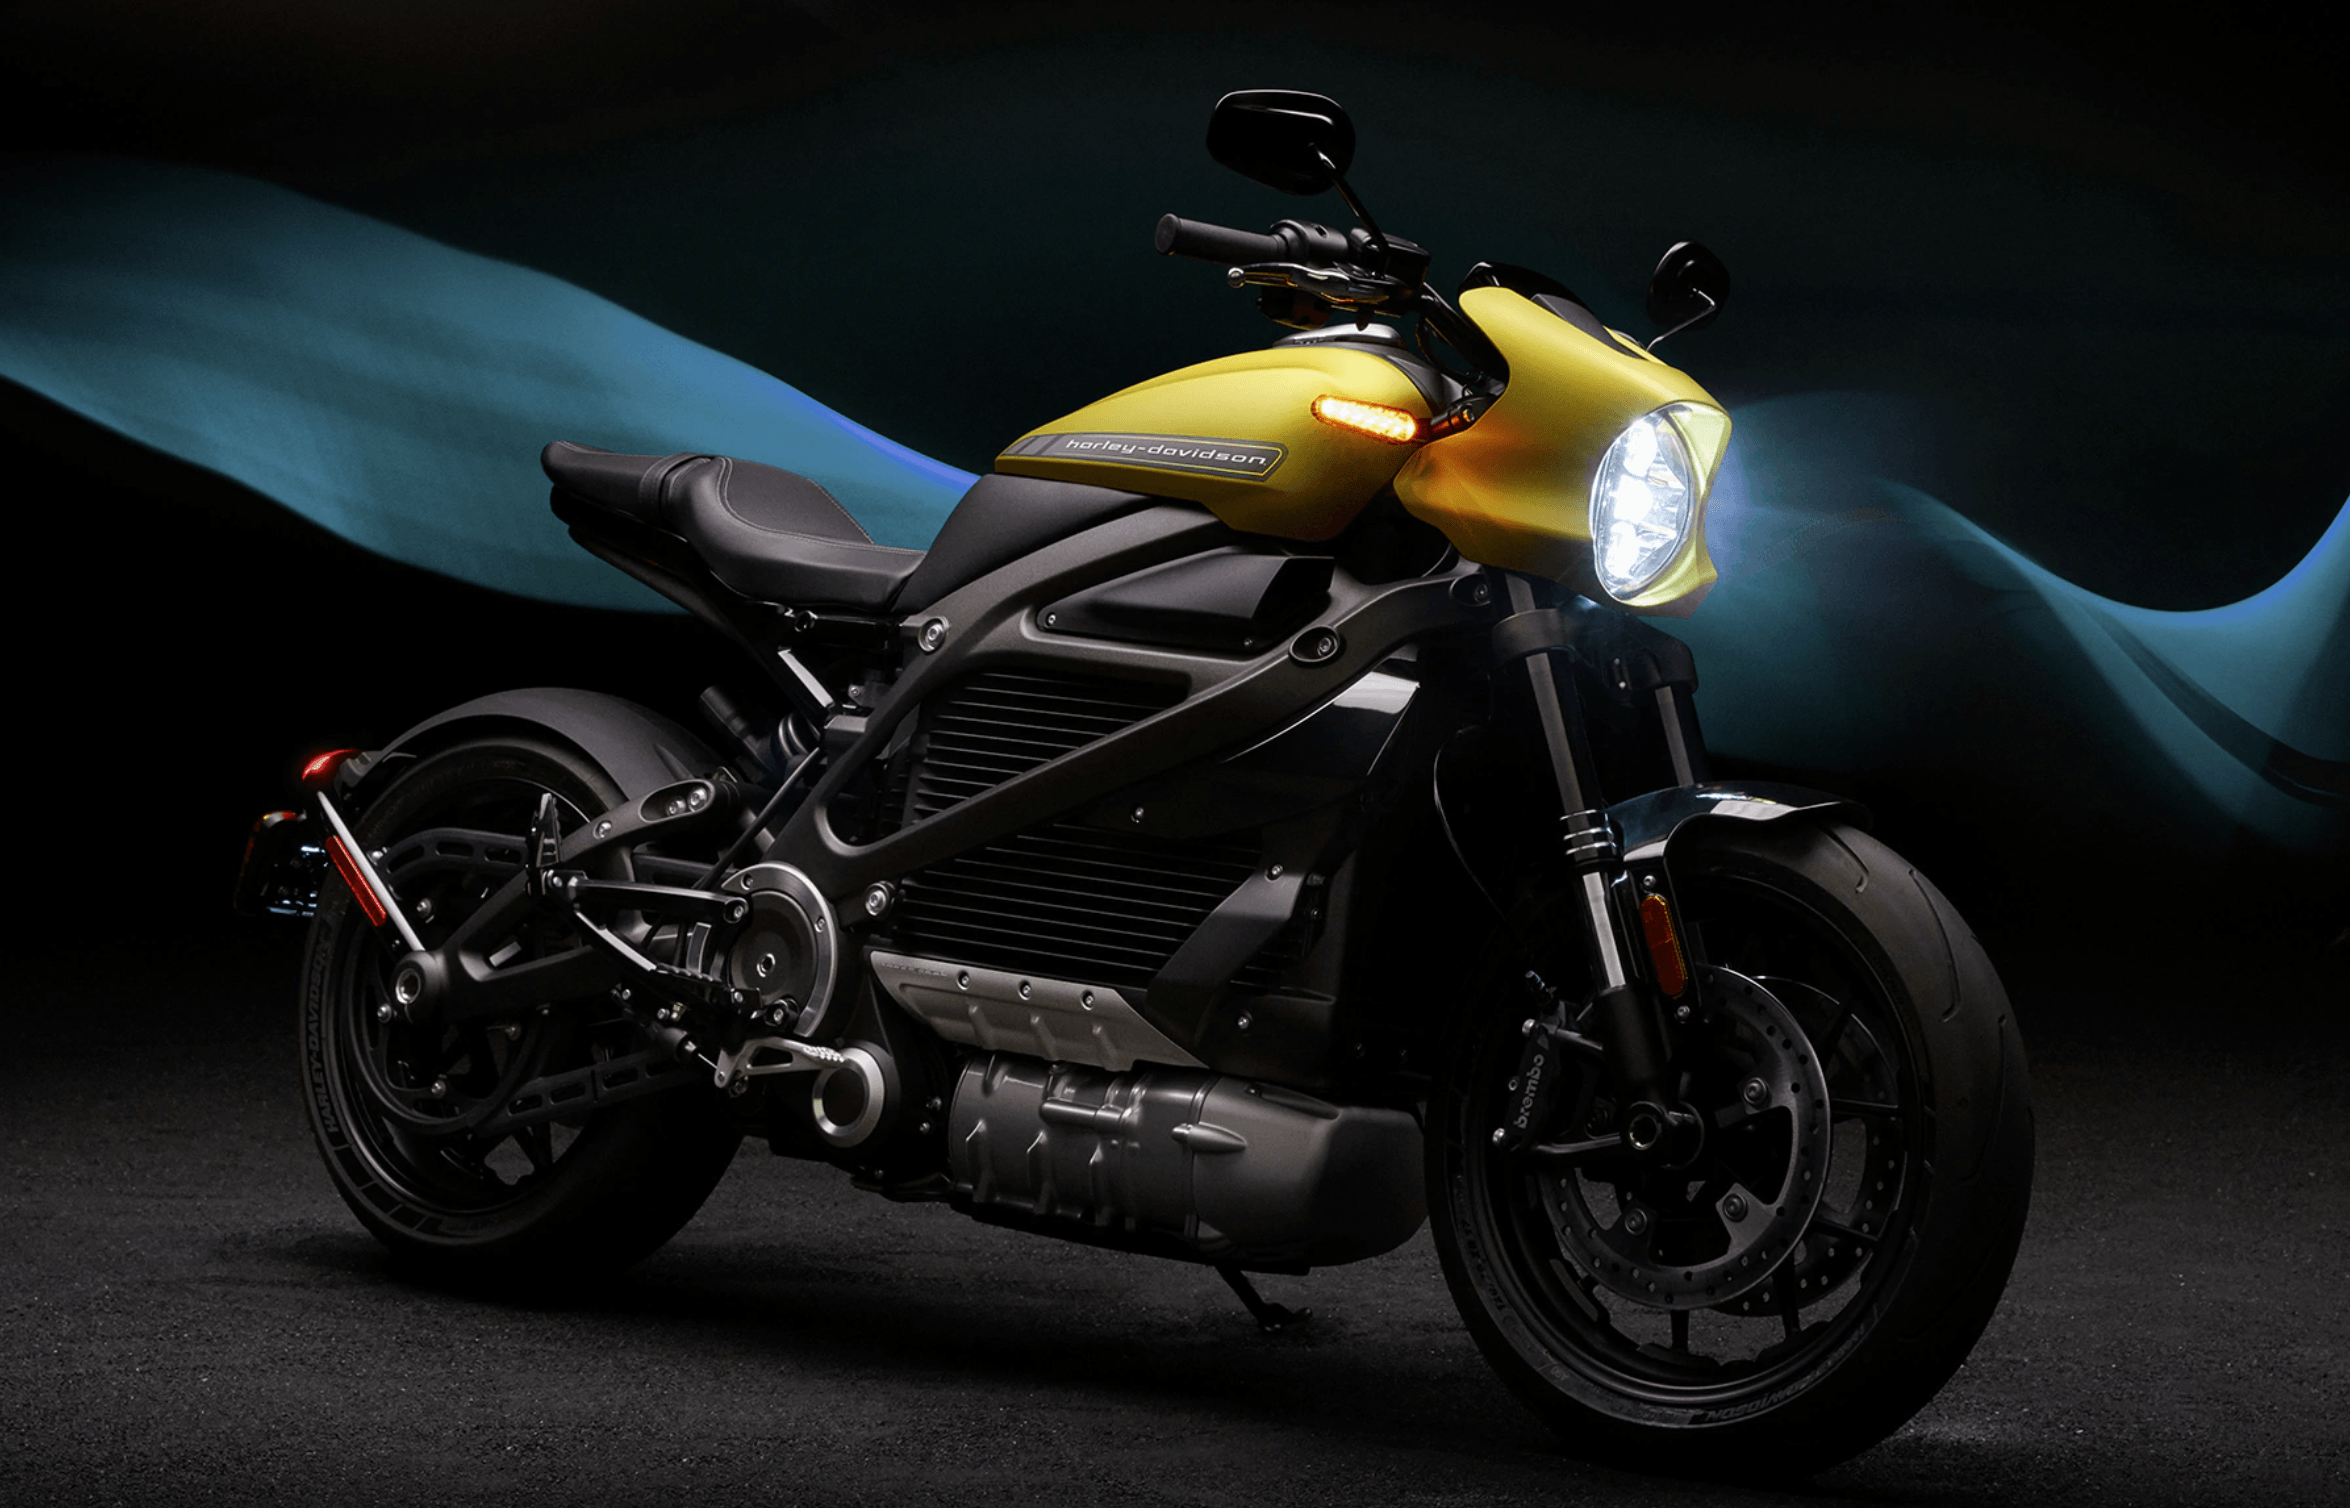 Harley-Davidson: The Electric Motorcycle Dream